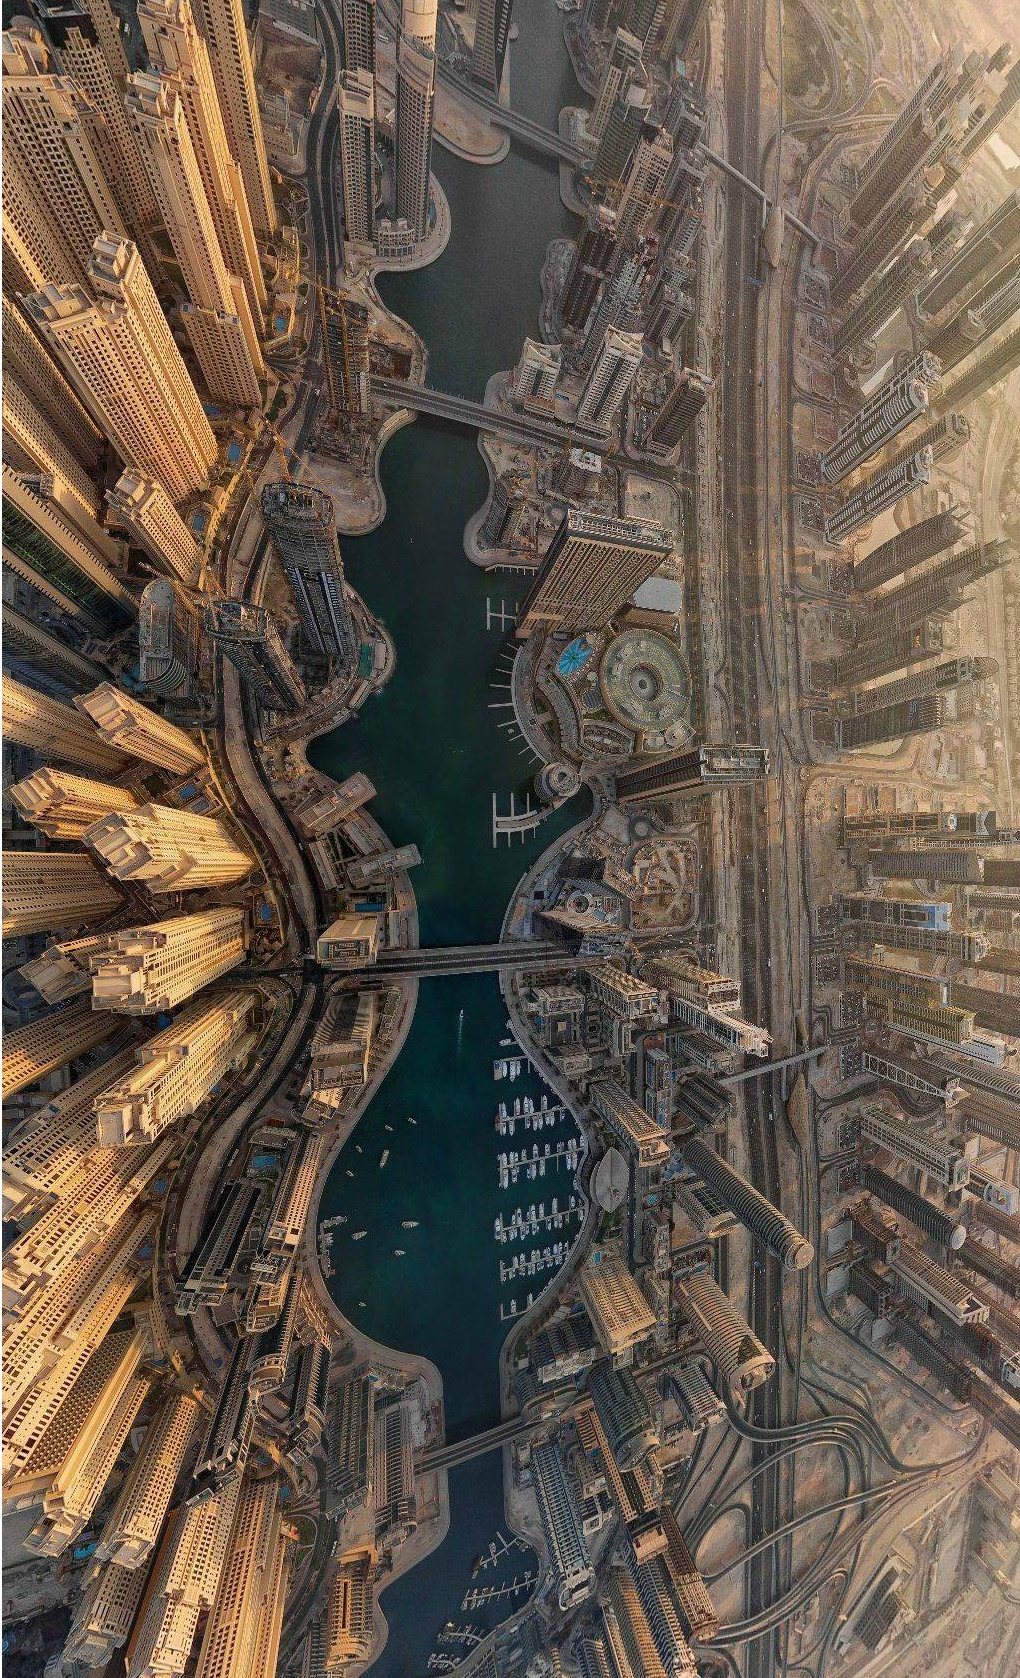 lsaac:  Dubai Marina pictured from above